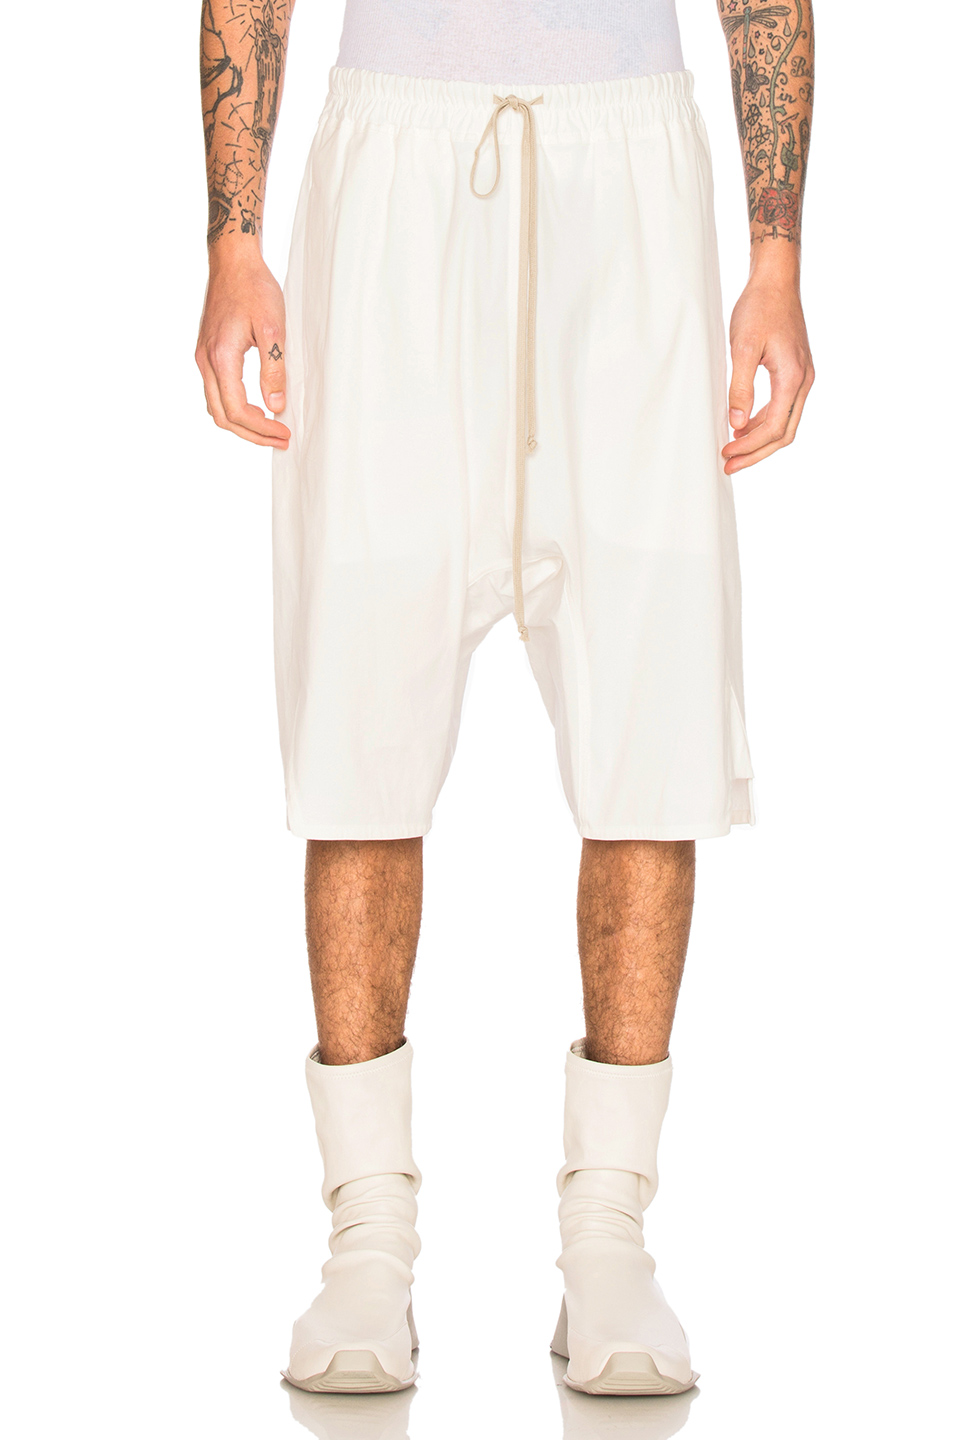 Rick Owens Basket Swinger Shorts in White